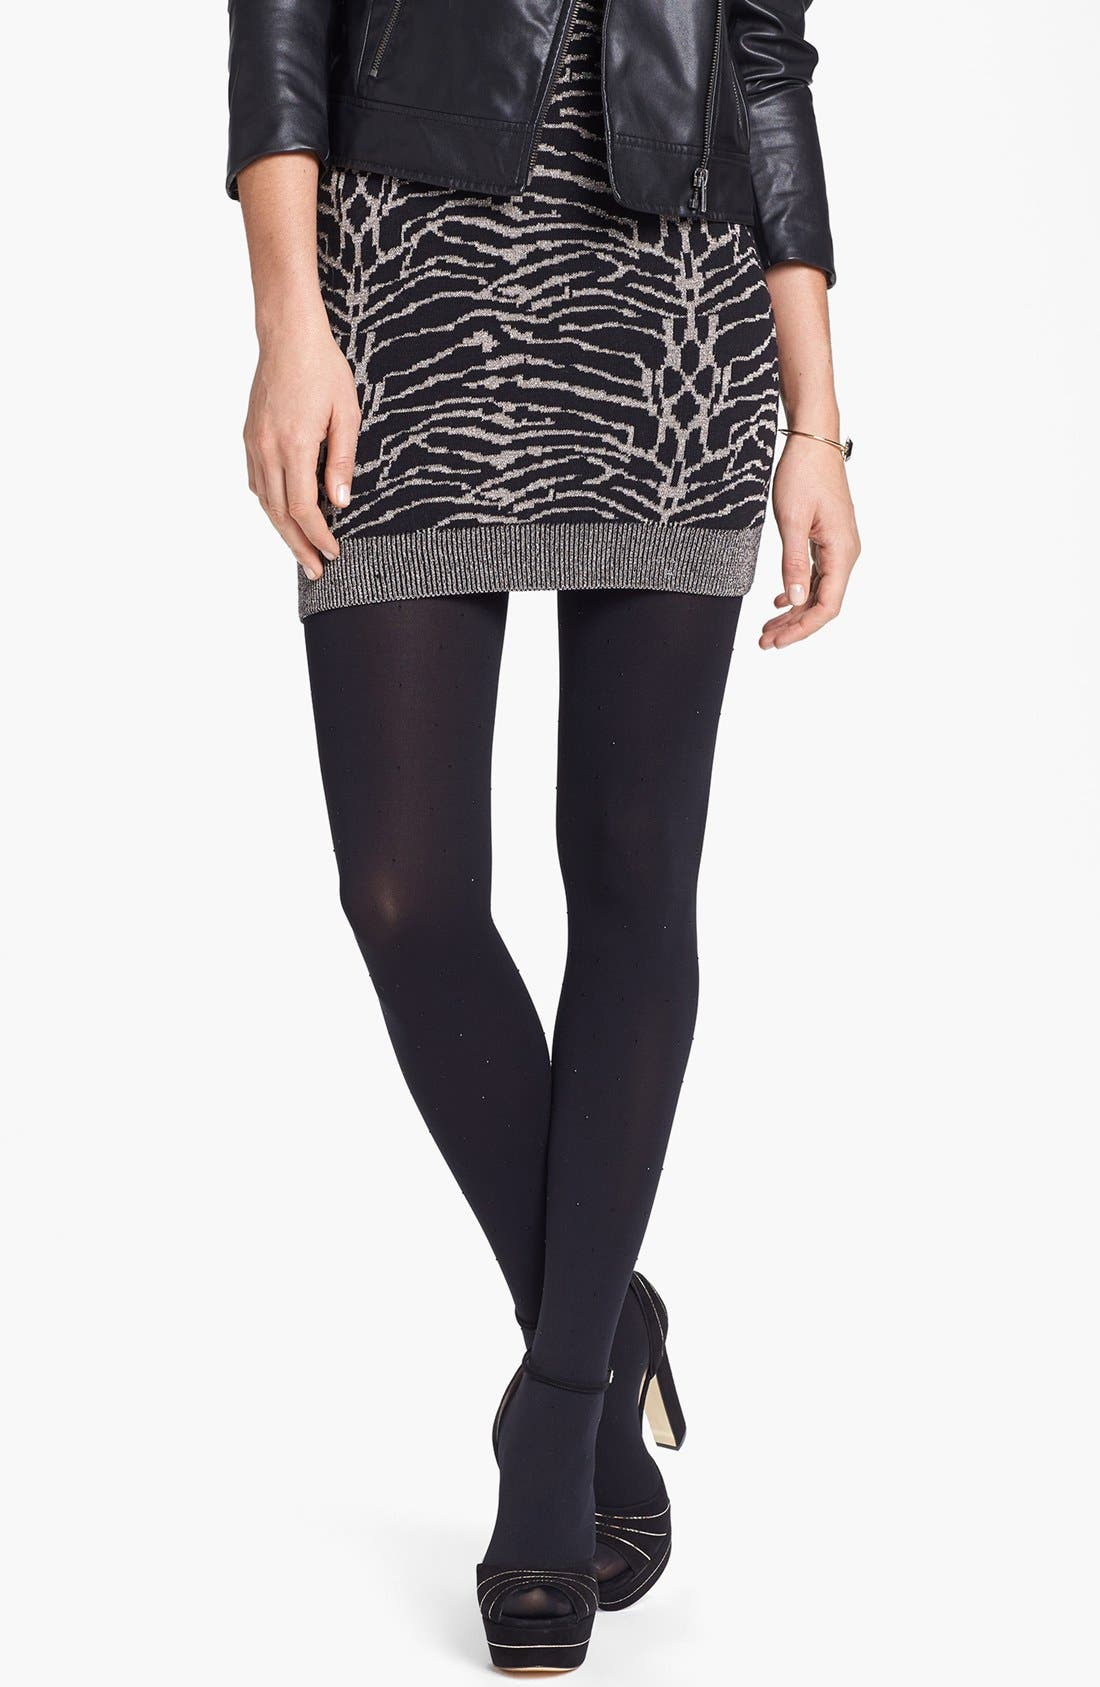 Main Image - Nordstrom Studded Tights